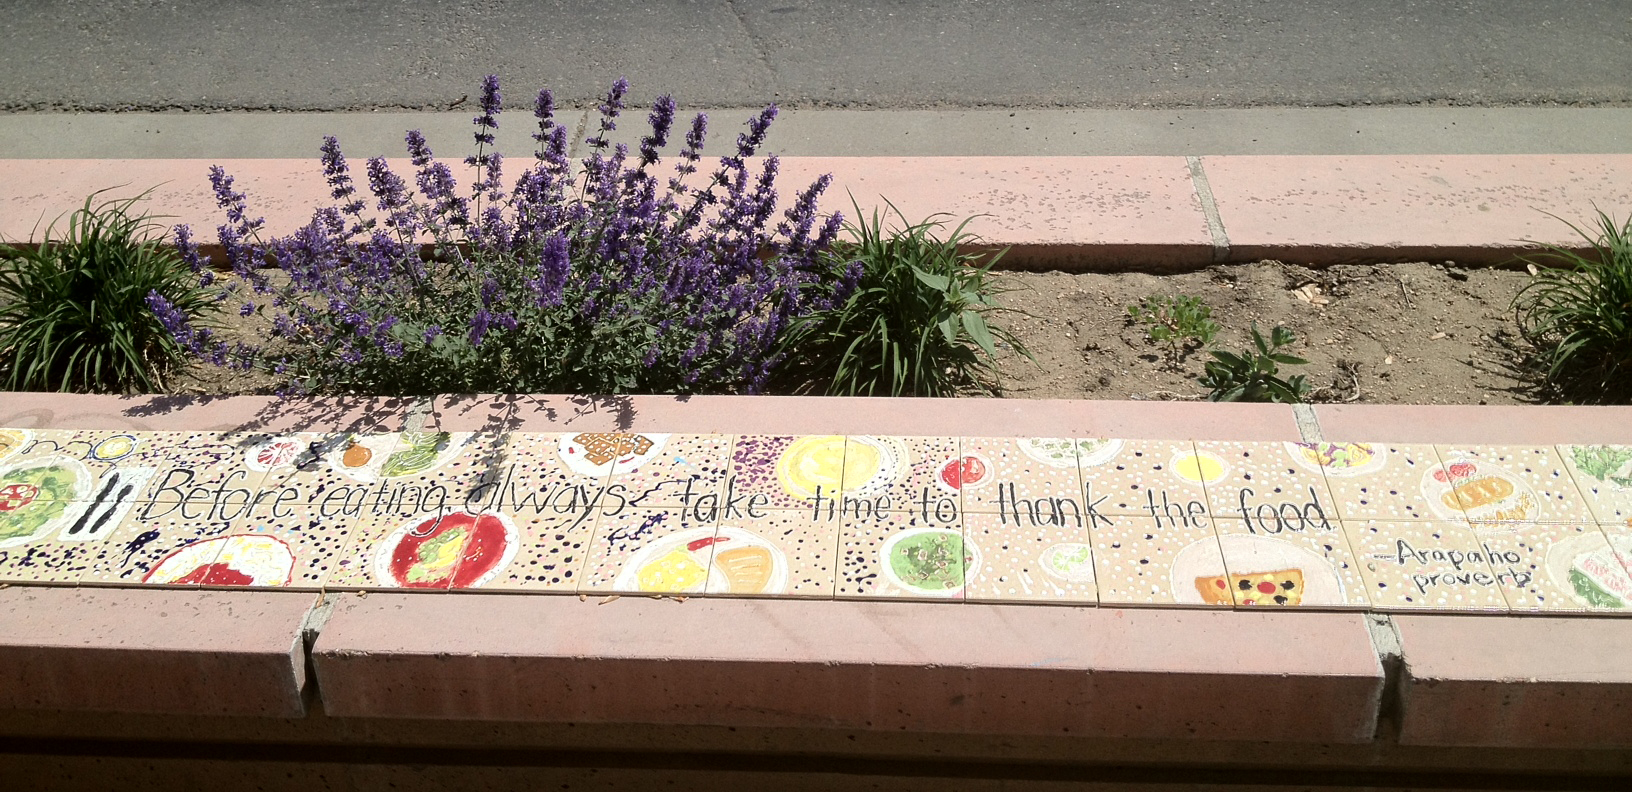 Go to the Morrison Road Mosaic Benches page